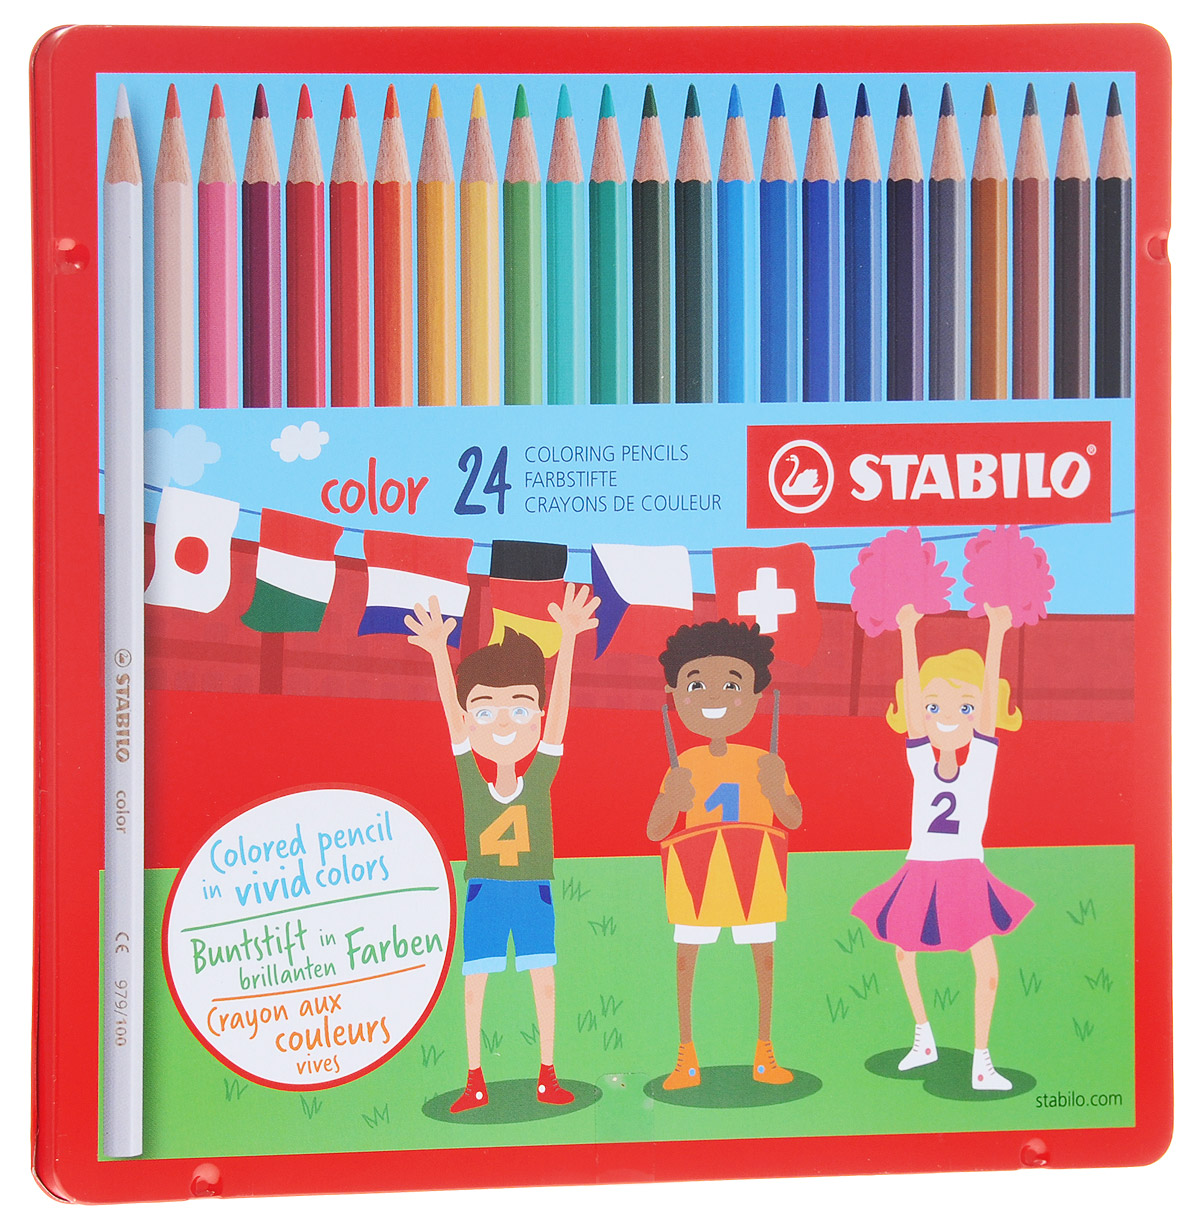 Stabilo Набор цветных карандашей Color 24 шт stabilo 880 woody 3 in 1 multipurpose pencils water color pencils crayon brushes assorted color 6 18 colors